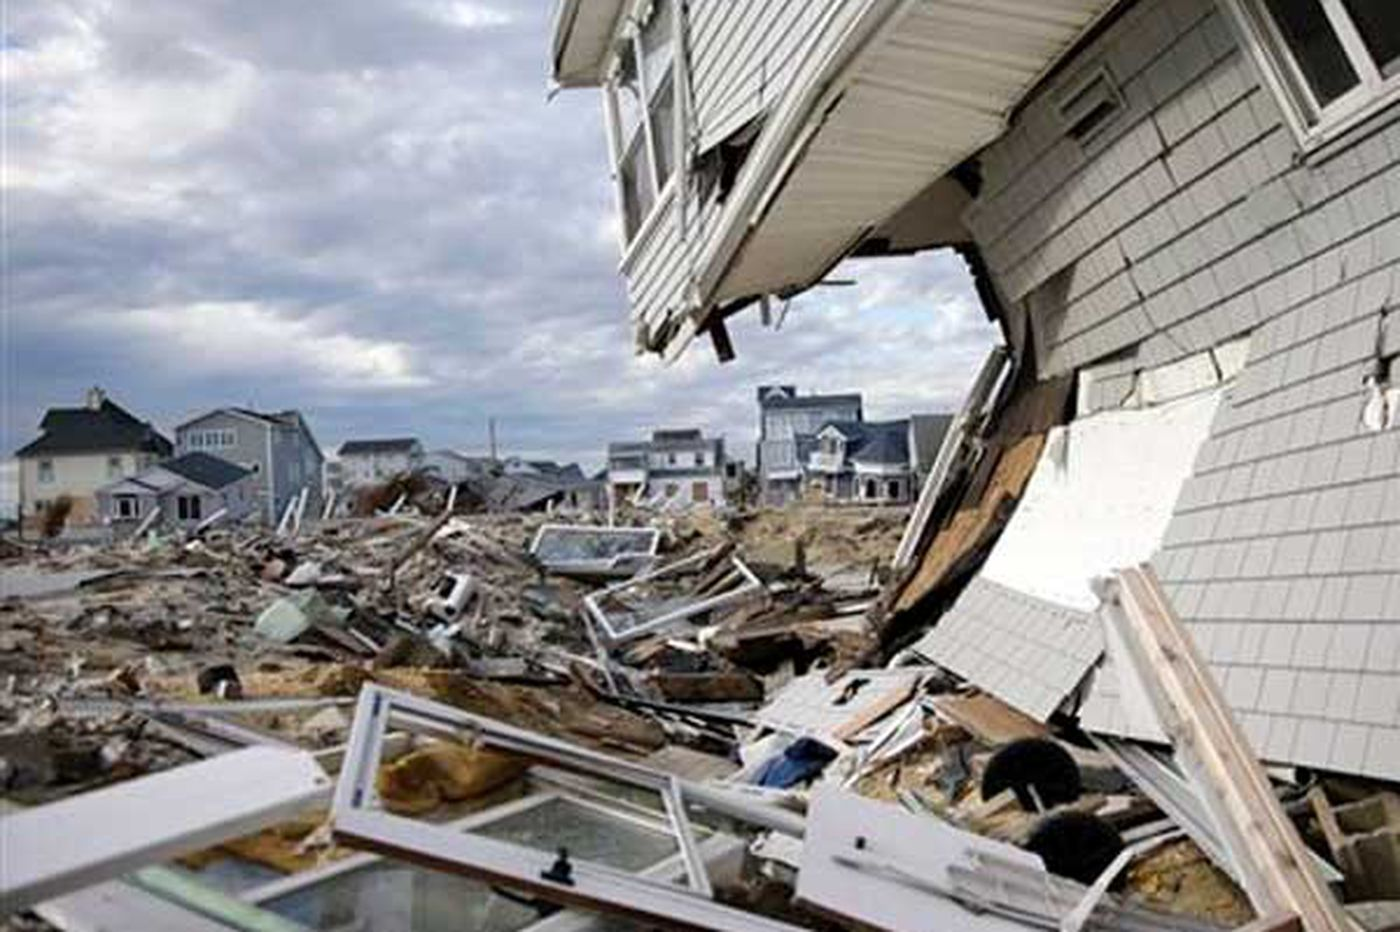 Sandy alerts short on clarity, report says